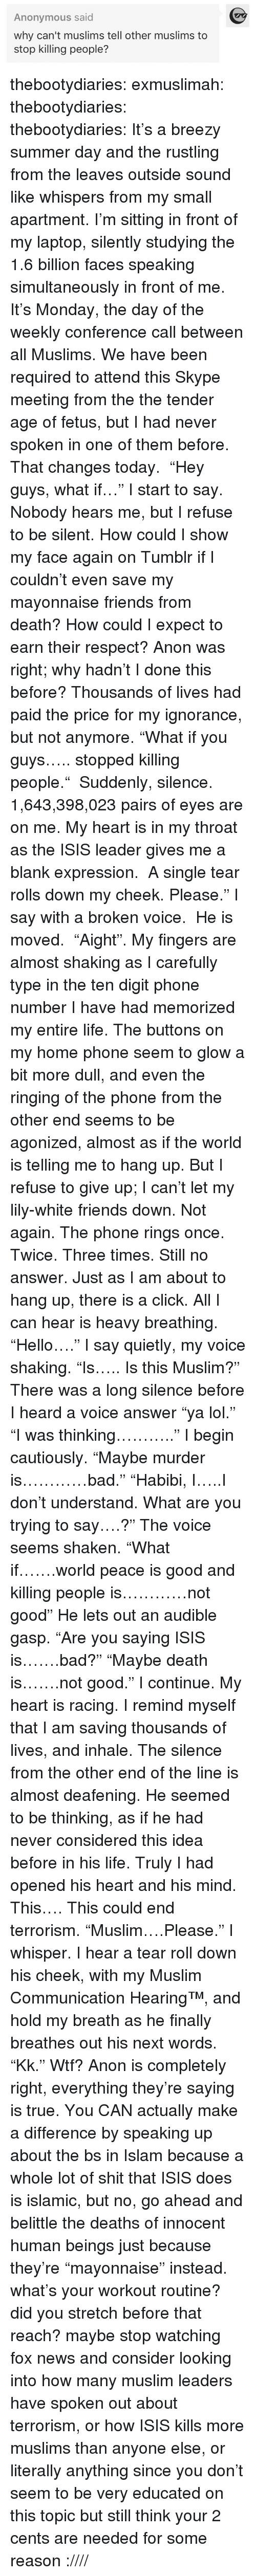 "Audible: Anonymous said  why can't muslims tell other muslims to  stop killing people? thebootydiaries:  exmuslimah: thebootydiaries:  thebootydiaries:  It's a breezy summer day and the rustling from the leaves outside sound like whispers from my small apartment. I'm sitting in front of my laptop, silently studying the 1.6 billion faces speaking simultaneously in front of me. It's Monday, the day of the weekly conference call between all Muslims. We have been required to attend this Skype meeting from the the tender age of fetus, but I had never spoken in one of them before.  That changes today.  ""Hey guys, what if…"" I start to say.  Nobody hears me, but I refuse to be silent. How could I show my face again on Tumblr if I couldn't even save my mayonnaise friends from death? How could I expect to earn their respect? Anon was right; why hadn't I done this before? Thousands of lives had paid the price for my ignorance, but not anymore. ""What if you guys….. stopped killing people.""  Suddenly, silence.  1,643,398,023 pairs of eyes are on me. My heart is in my throat as the ISIS leader gives me a blank expression.  A single tear rolls down my cheek. Please."" I say with a broken voice.  He is moved.  ""Aight"".   My fingers are almost shaking as I carefully type in the ten digit phone number I have had memorized my entire life. The buttons on my home phone seem to glow a bit more dull, and even the ringing of the phone from the other end seems to be agonized, almost as if the world is telling me to hang up. But I refuse to give up; I can't let my lily-white friends down. Not again. The phone rings once. Twice. Three times. Still no answer. Just as I am about to hang up, there is a click. All I can hear is heavy breathing. ""Hello…."" I say quietly, my voice shaking. ""Is….. Is this Muslim?"" There was a long silence before I heard a voice answer ""ya lol."" ""I was thinking……….."" I begin cautiously. ""Maybe murder is…………bad."" ""Habibi, I…..I don't understand. What are you trying to say….?"" The voice seems shaken. ""What if…….world peace is good and killing people is…………not good"" He lets out an audible gasp. ""Are you saying ISIS is…….bad?"" ""Maybe death is…….not good."" I continue. My heart is racing. I remind myself that I am saving thousands of lives, and inhale. The silence from the other end of the line is almost deafening. He seemed to be thinking, as if he had never considered this idea before in his life. Truly I had opened his heart and his mind. This…. This could end terrorism. ""Muslim….Please."" I whisper. I hear a tear roll down his cheek, with my Muslim Communication Hearing™, and hold my breath as he finally breathes out his next words. ""Kk.""  Wtf? Anon is completely right, everything they're saying is true. You CAN actually make a difference by speaking up about the bs in Islam because a whole lot of shit that ISIS does is islamic, but no, go ahead and belittle the deaths of innocent human beings just because they're ""mayonnaise"" instead.  what's your workout routine? did you stretch before that reach? maybe stop watching fox news and consider looking into how many muslim leaders have spoken out about terrorism, or how ISIS kills more muslims than anyone else, or literally anything since you don't seem to be very educated on this topic but still think your 2 cents are needed for some reason :////"